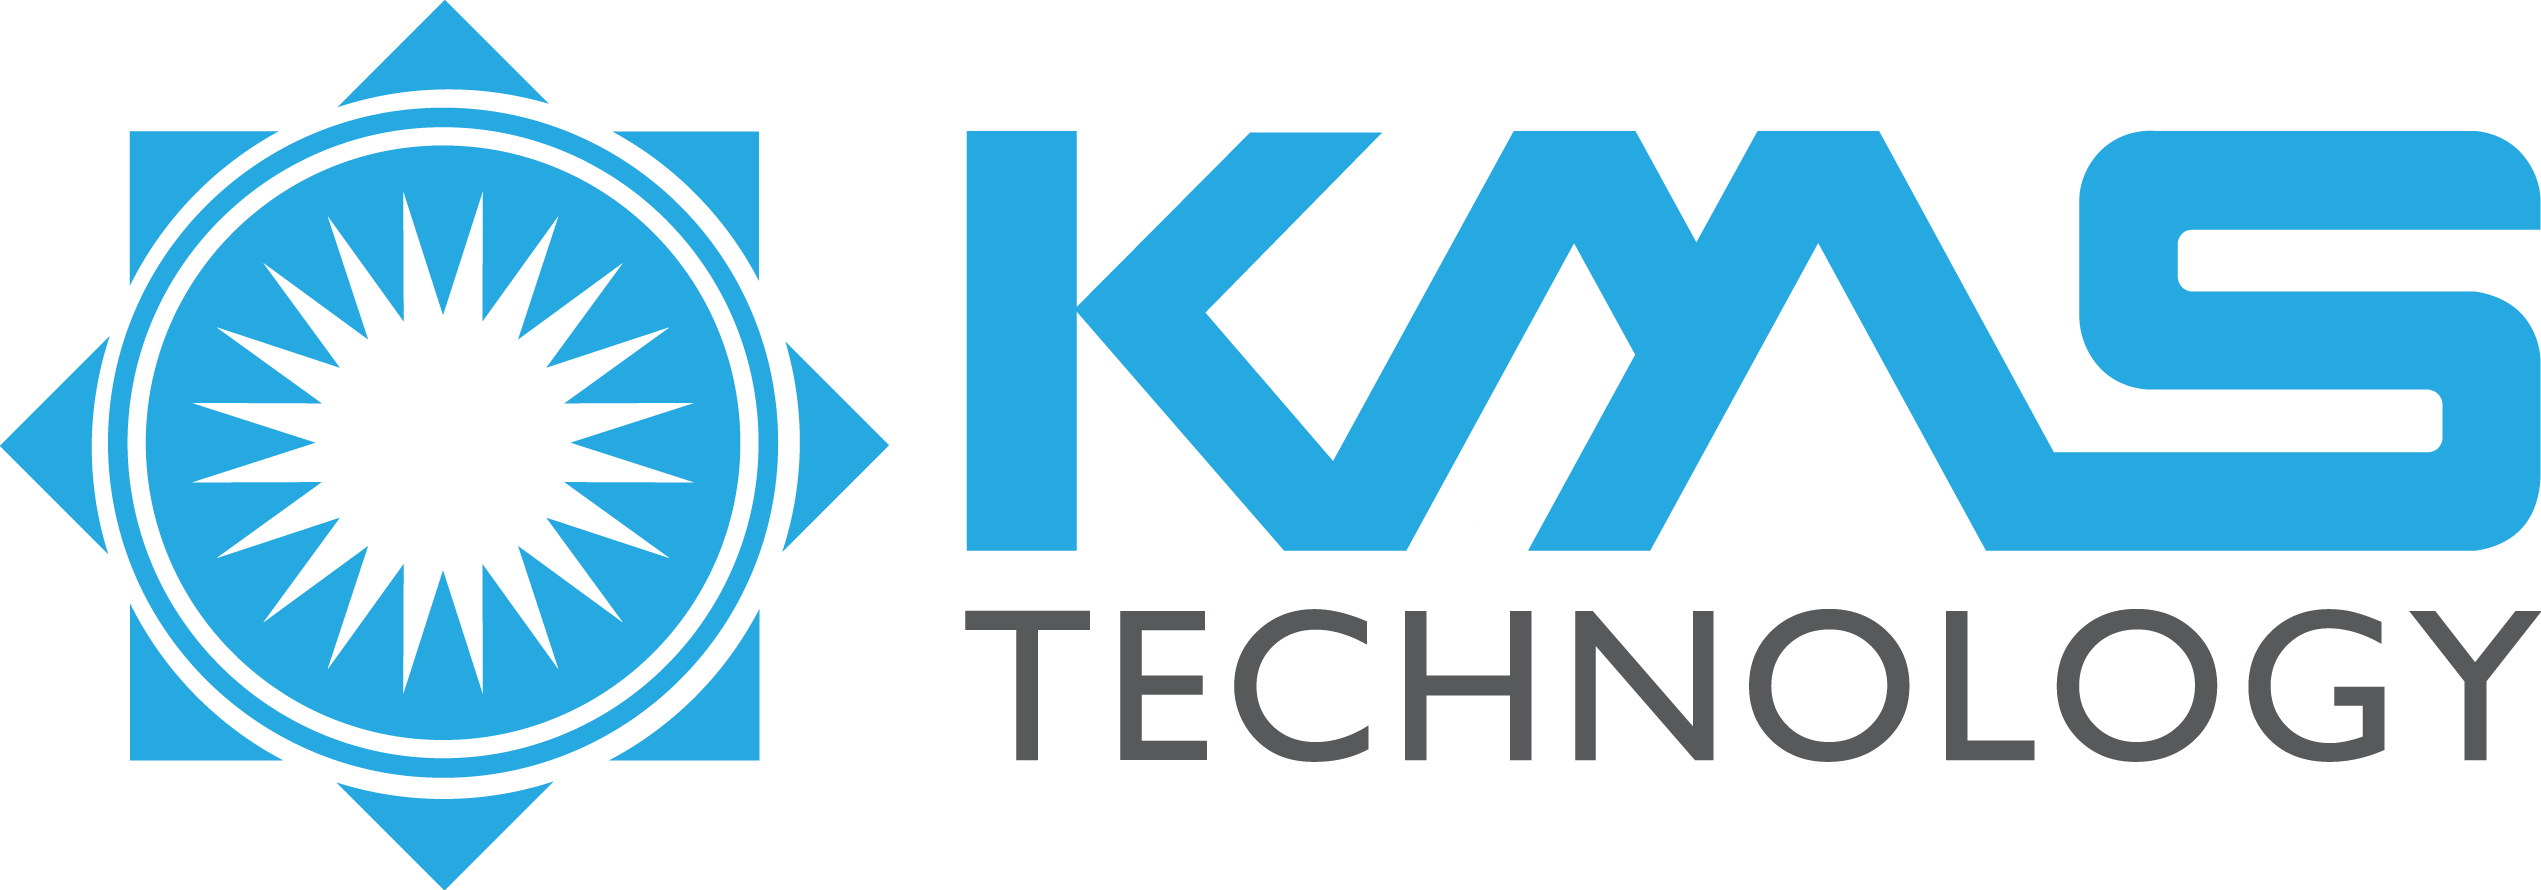 KMSTechnology